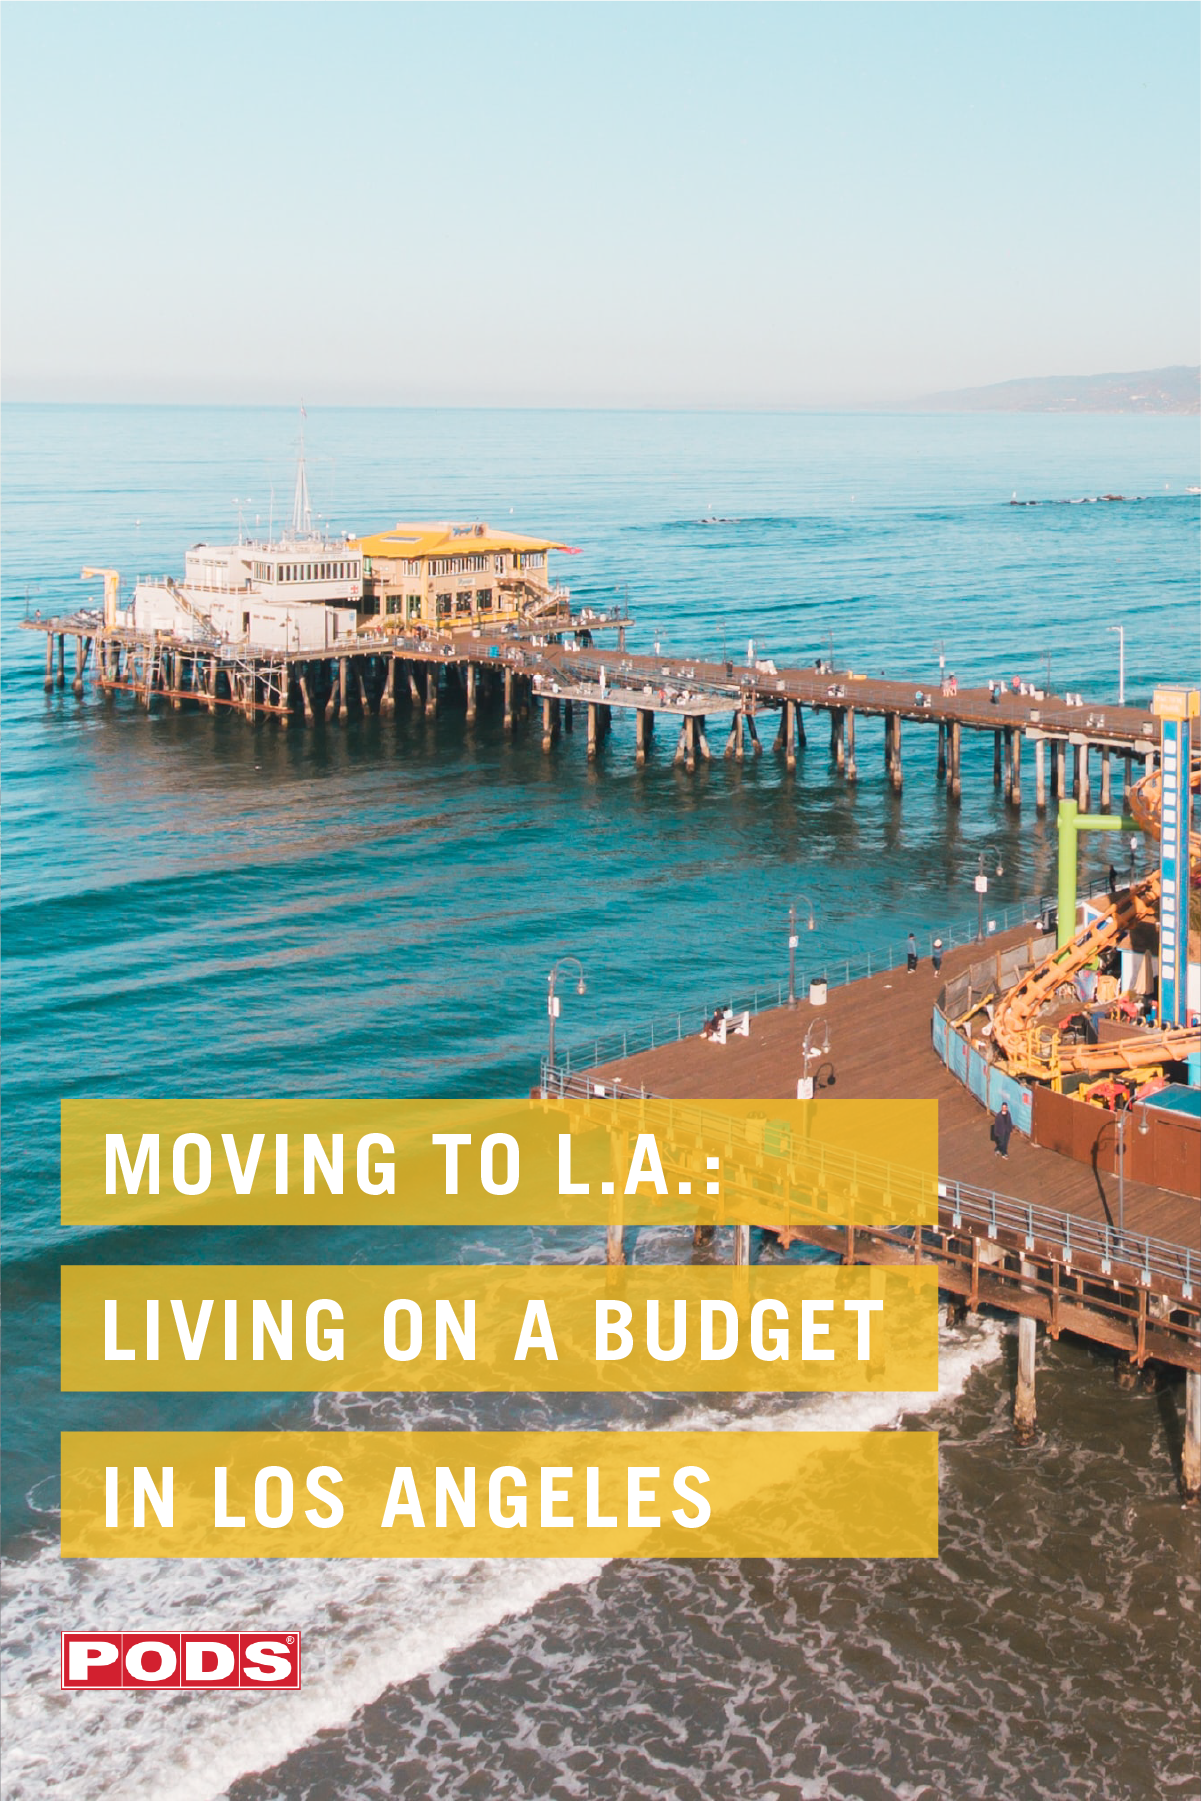 It's no secret that cost of living in Los Angeles is a bit higher than the national average. So let's dive into what budget-friendly living in Los Angeles looks like with some insider advice your wallet will thank you for! #lalifestyle #budgetingtips #PODS